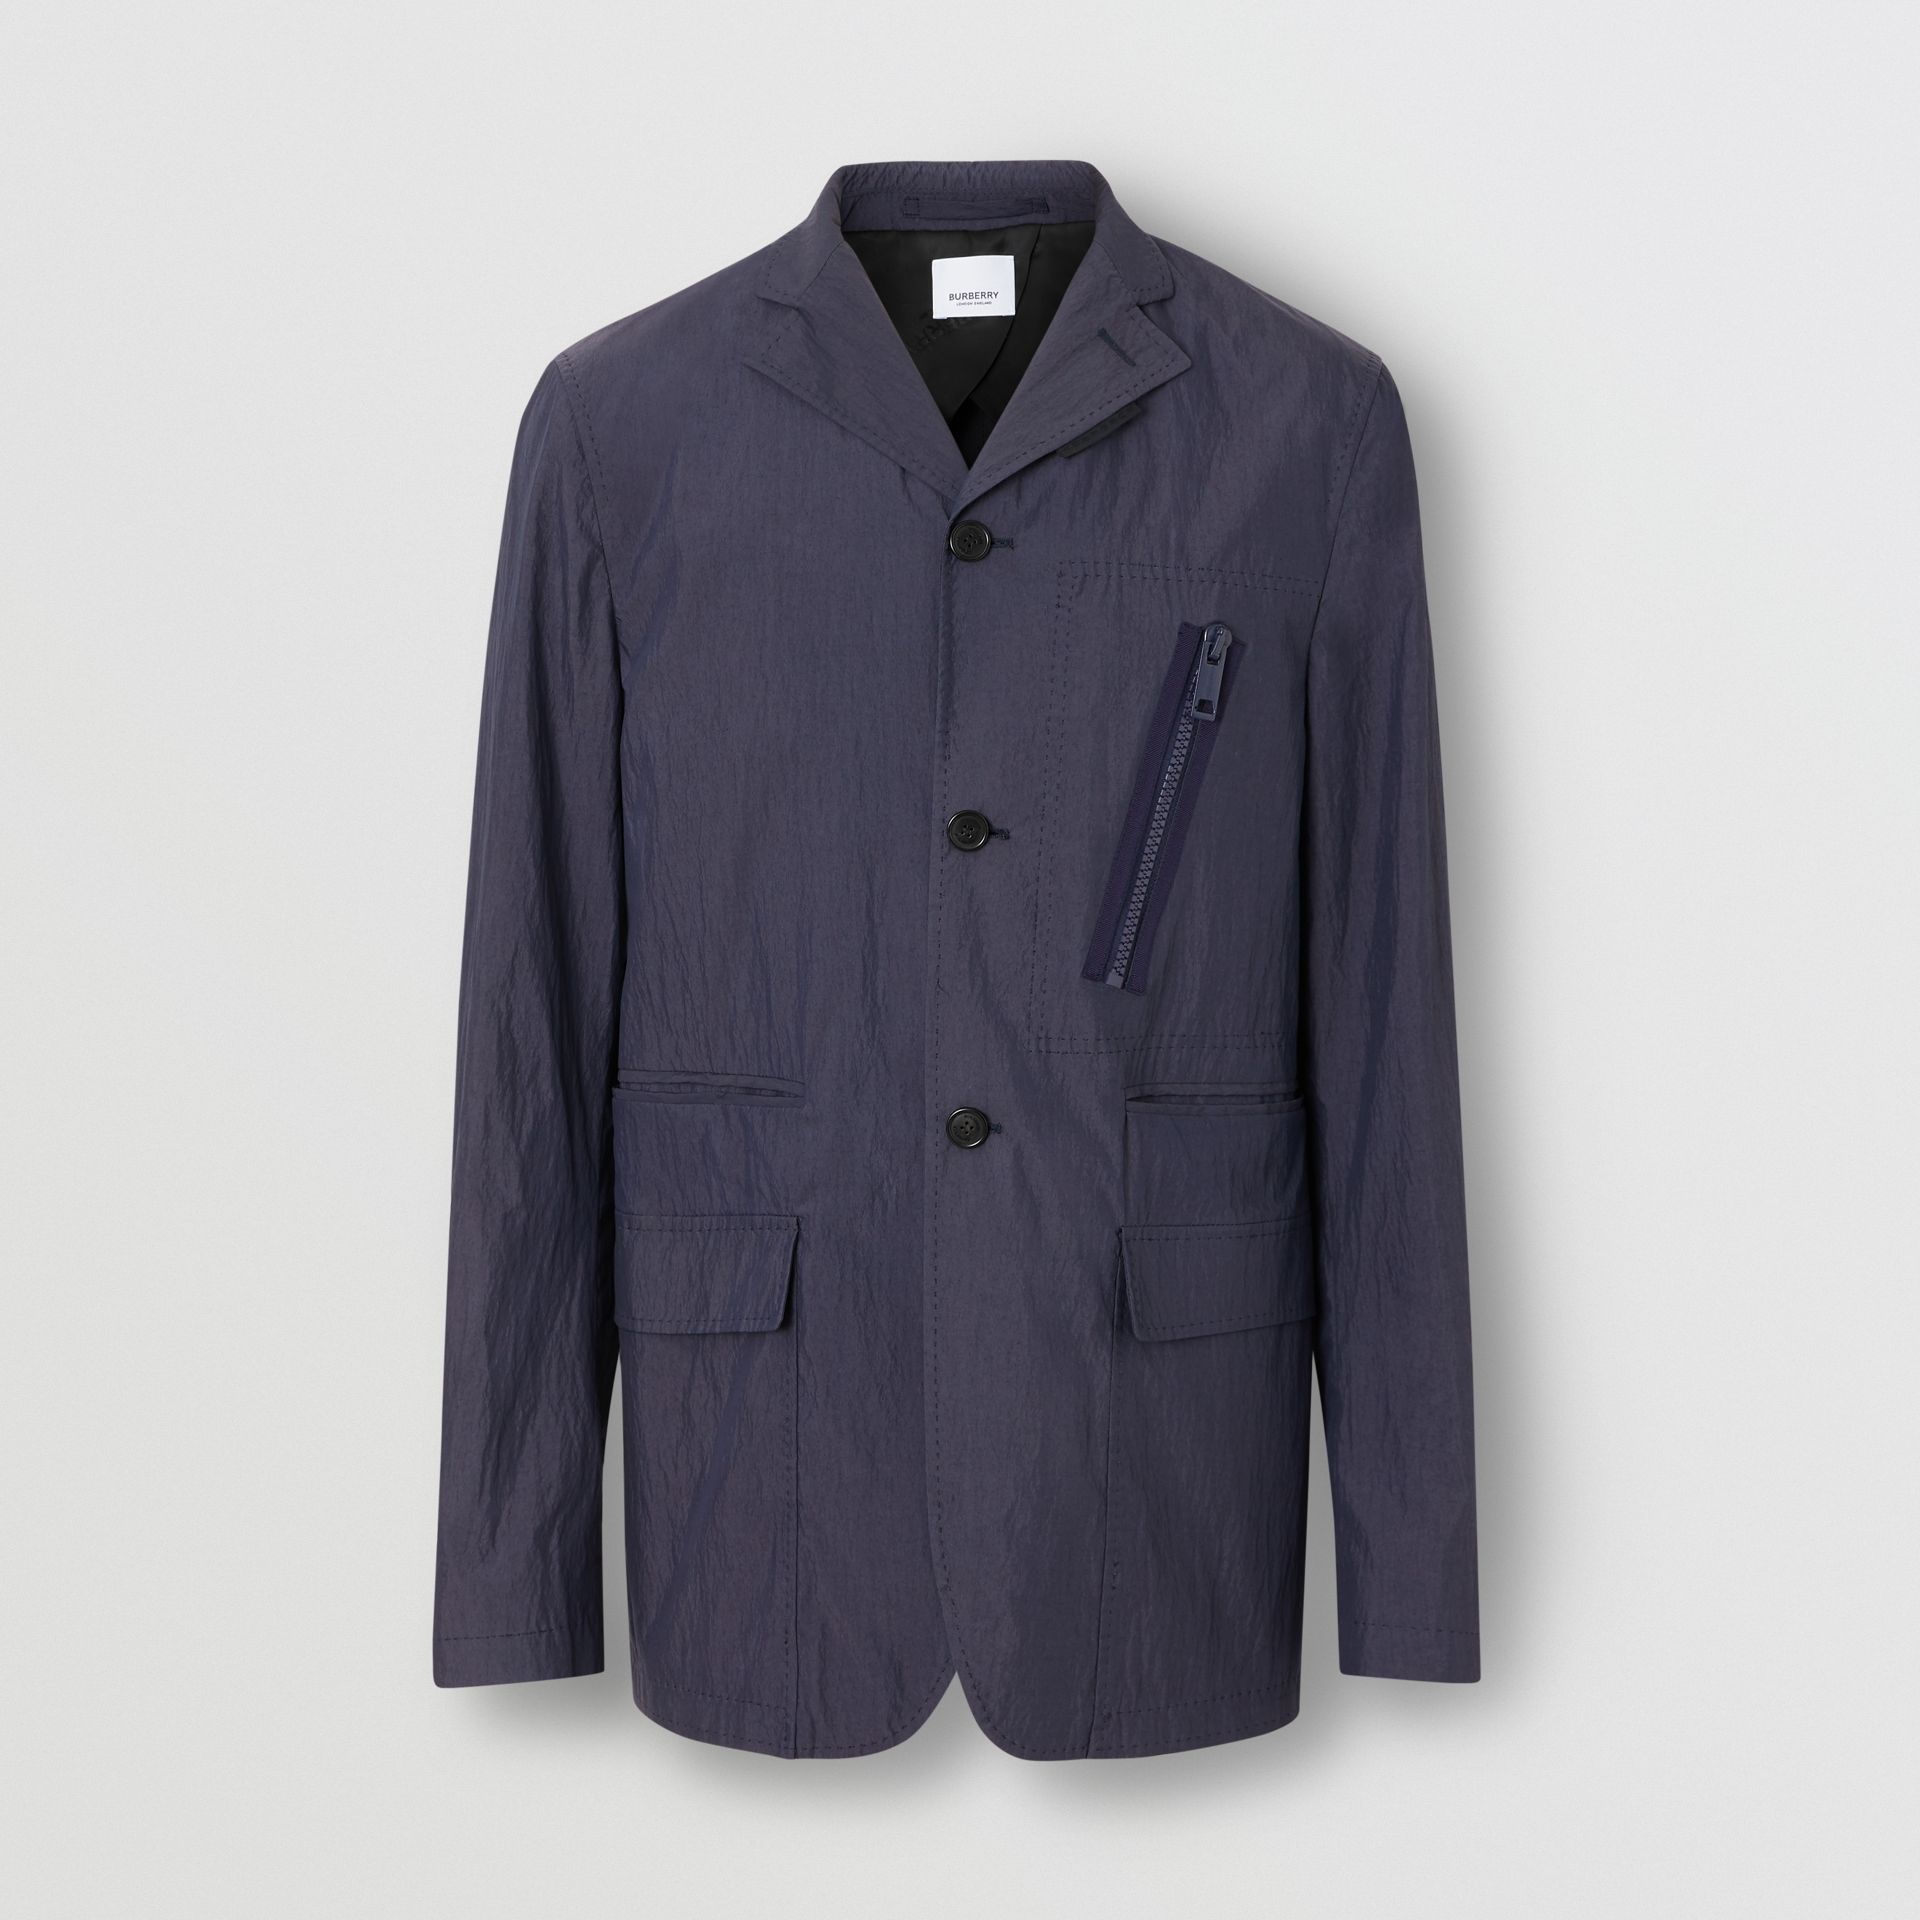 Crinkled Cotton Blend Tailored Jacket in Navy - Men | Burberry United Kingdom - gallery image 3